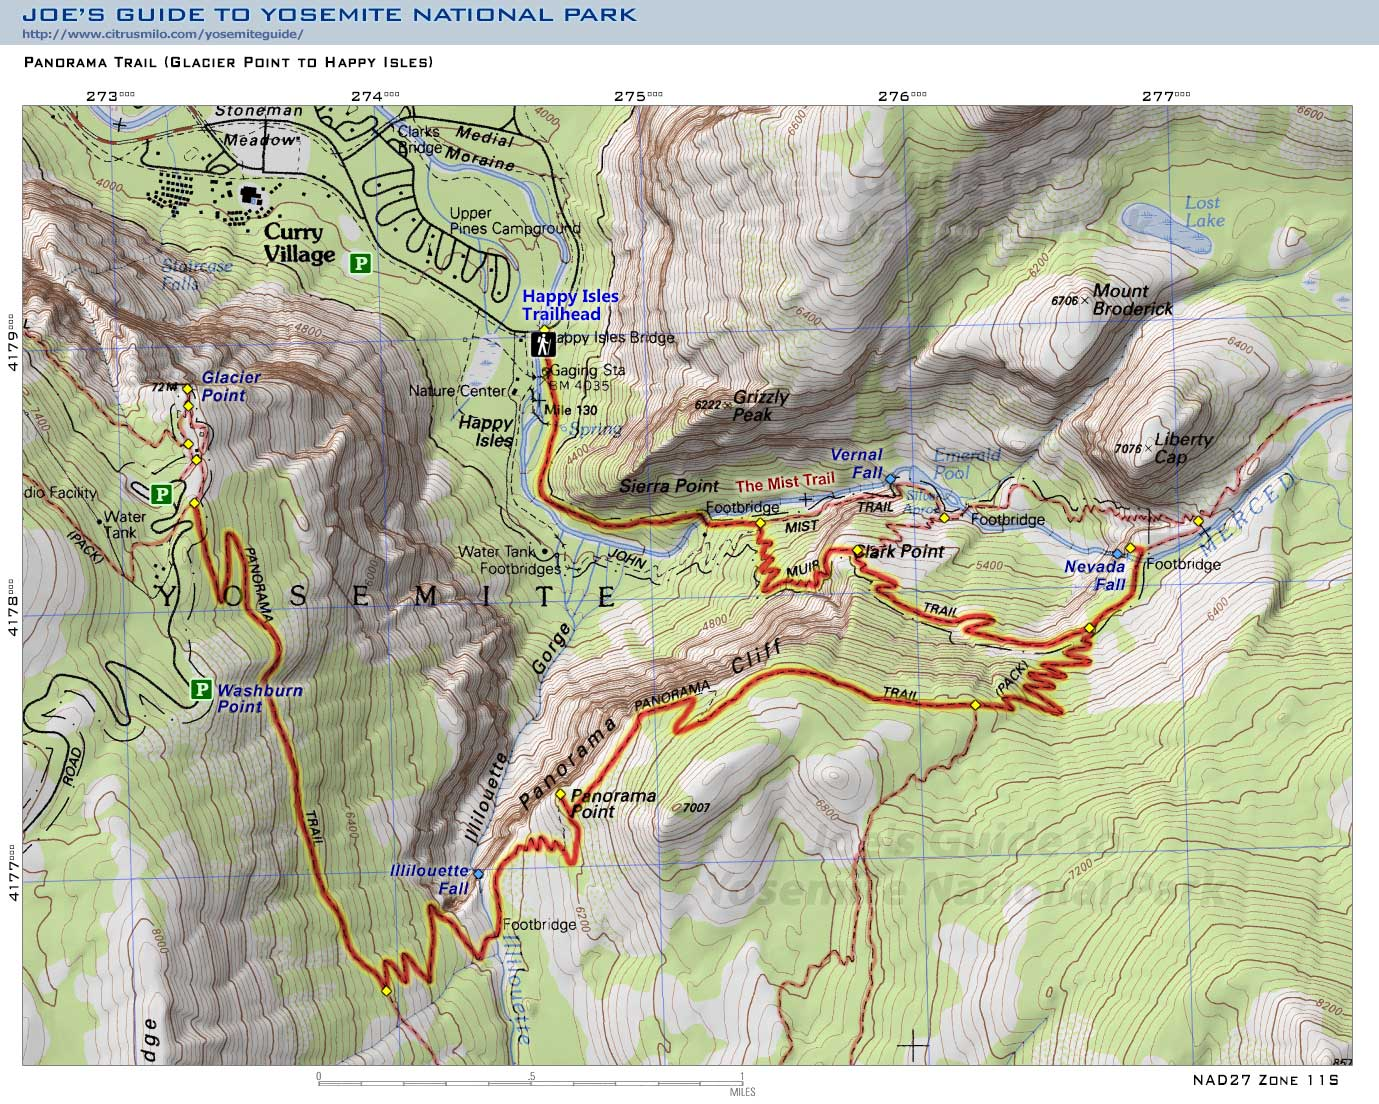 Joe S Guide To Yosemite National Park Panorama Trail Topo Map